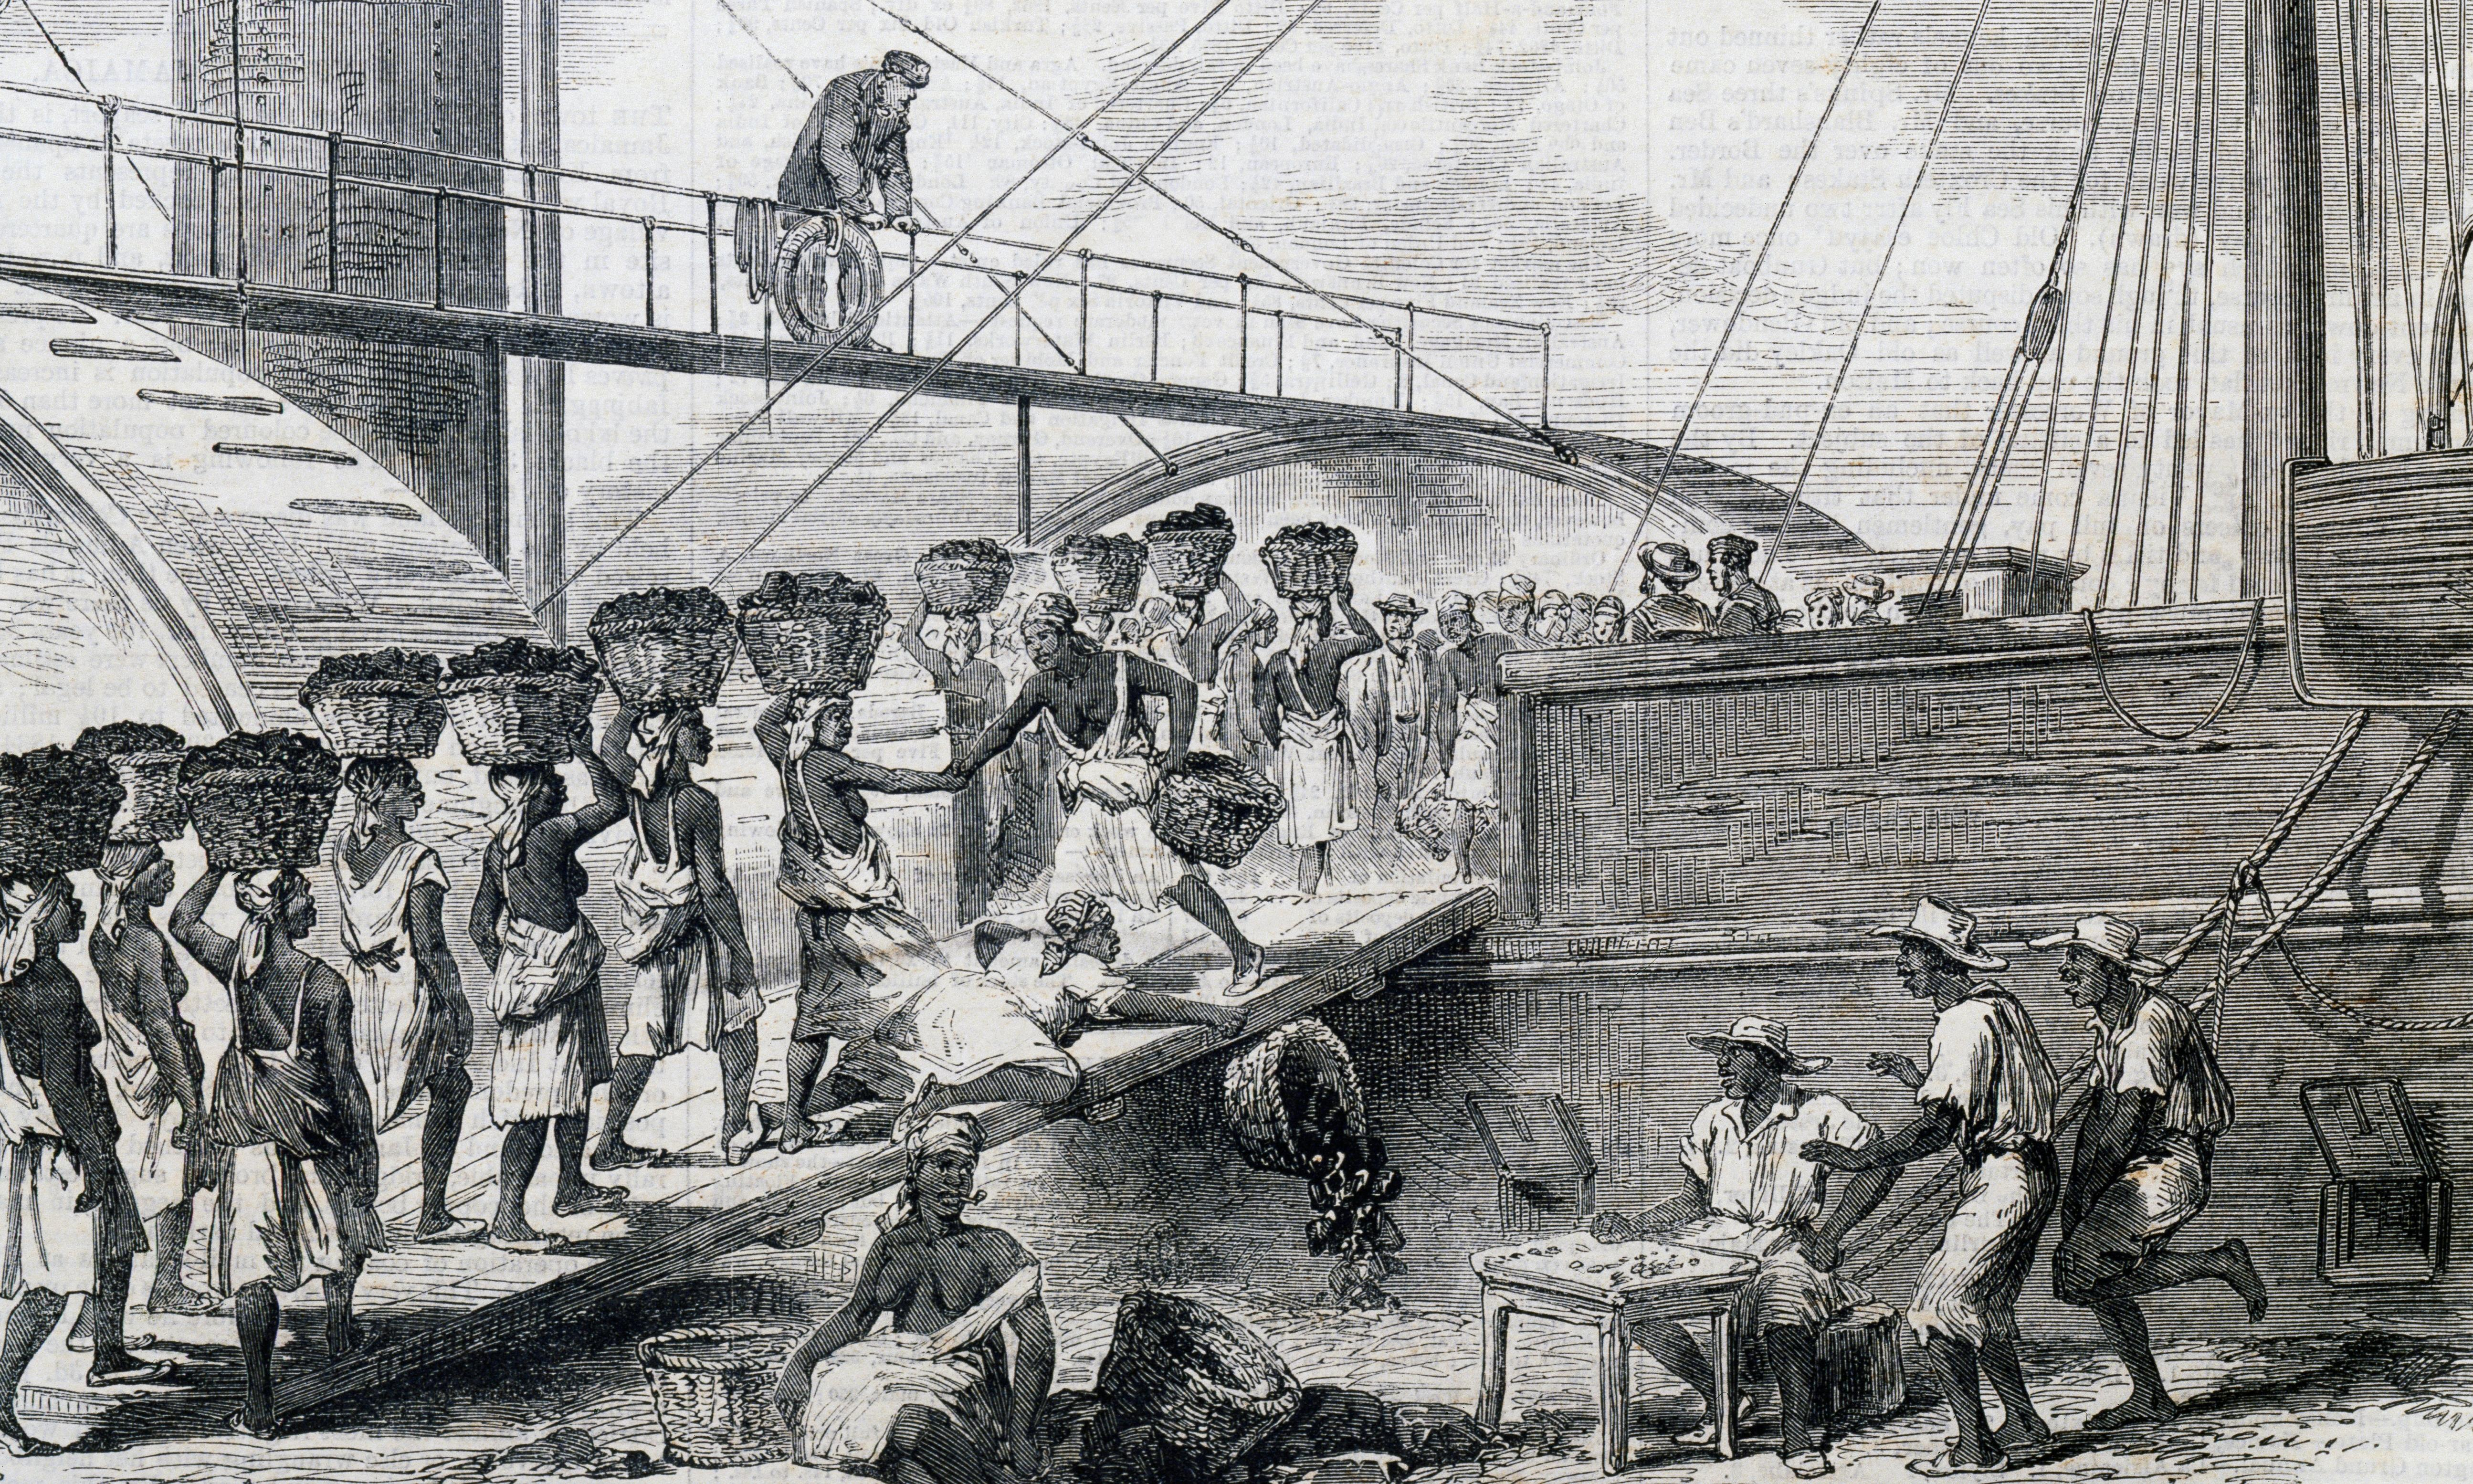 Tacky's Revolt review: Britain, Jamaica, slavery and an early fight for freedom